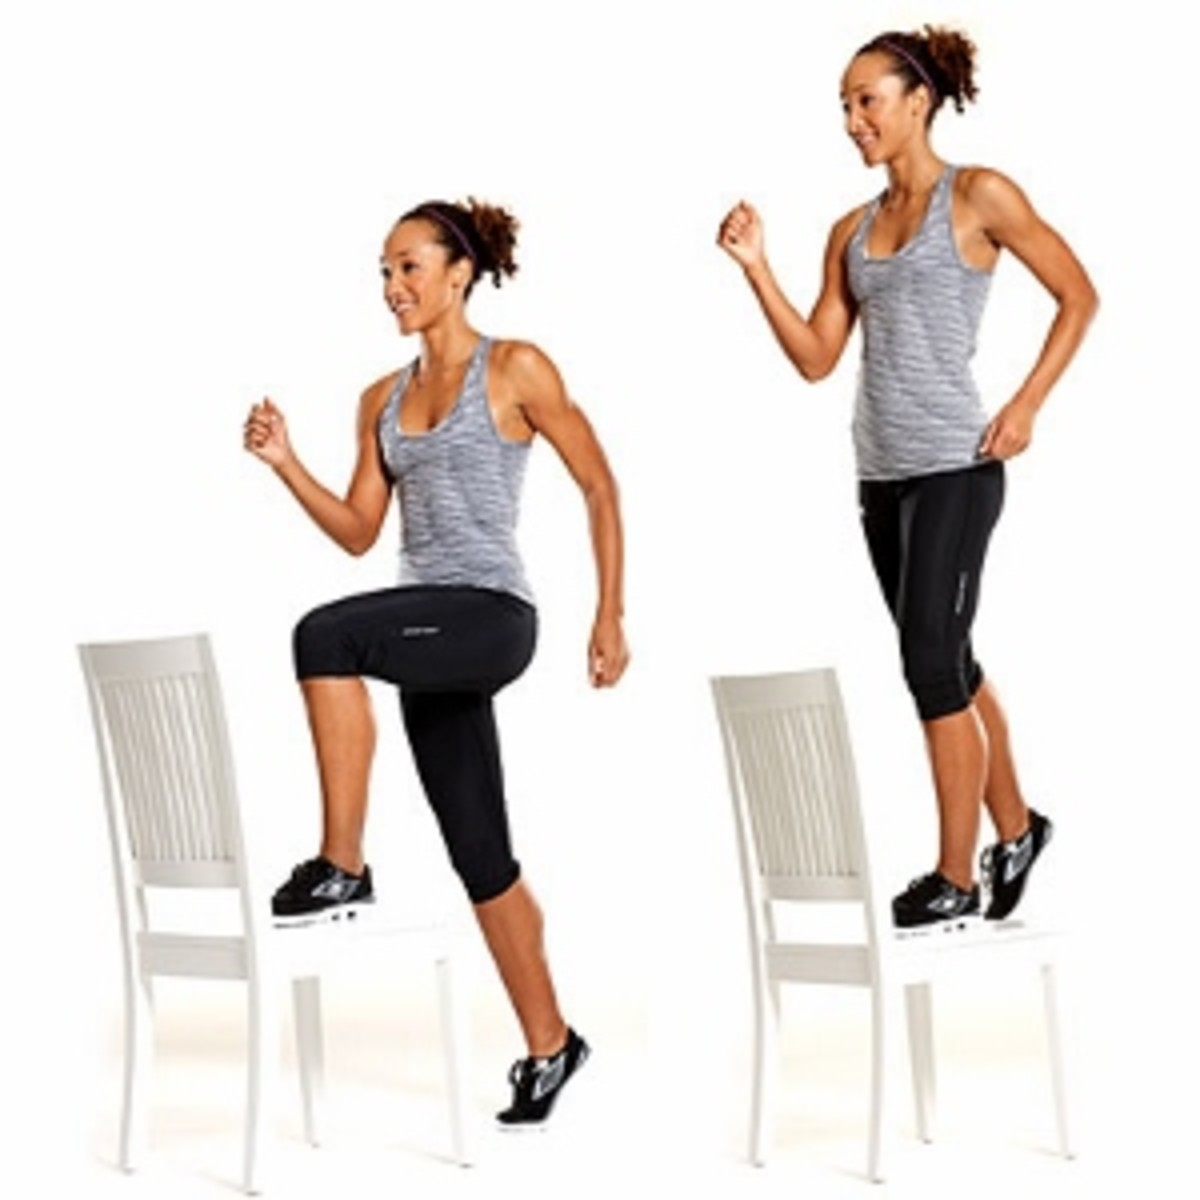 Step-ups: A weighted or unweighted lower body movement utilized by hurdlers to to improve strength as well as balance and coordination. This exercise's emphasizes primarily the quadriceps but also involves the glutes and hamstrings.